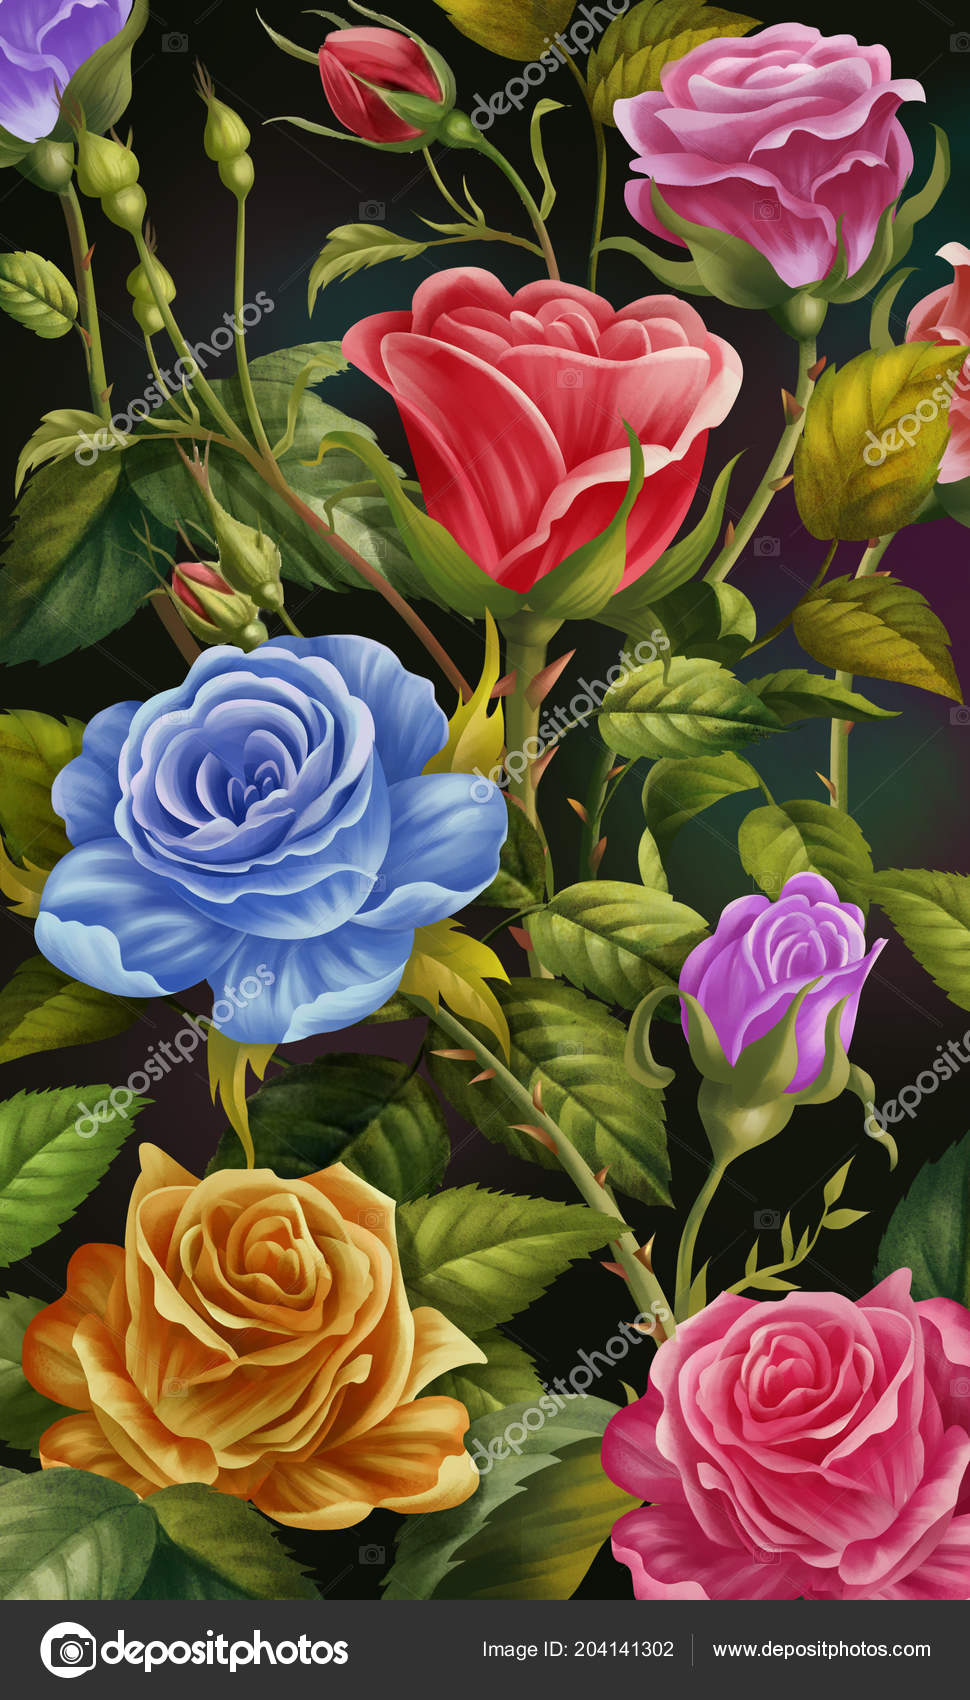 Floral Phone Backgrounds Floral Background Colorful Rose Flowers